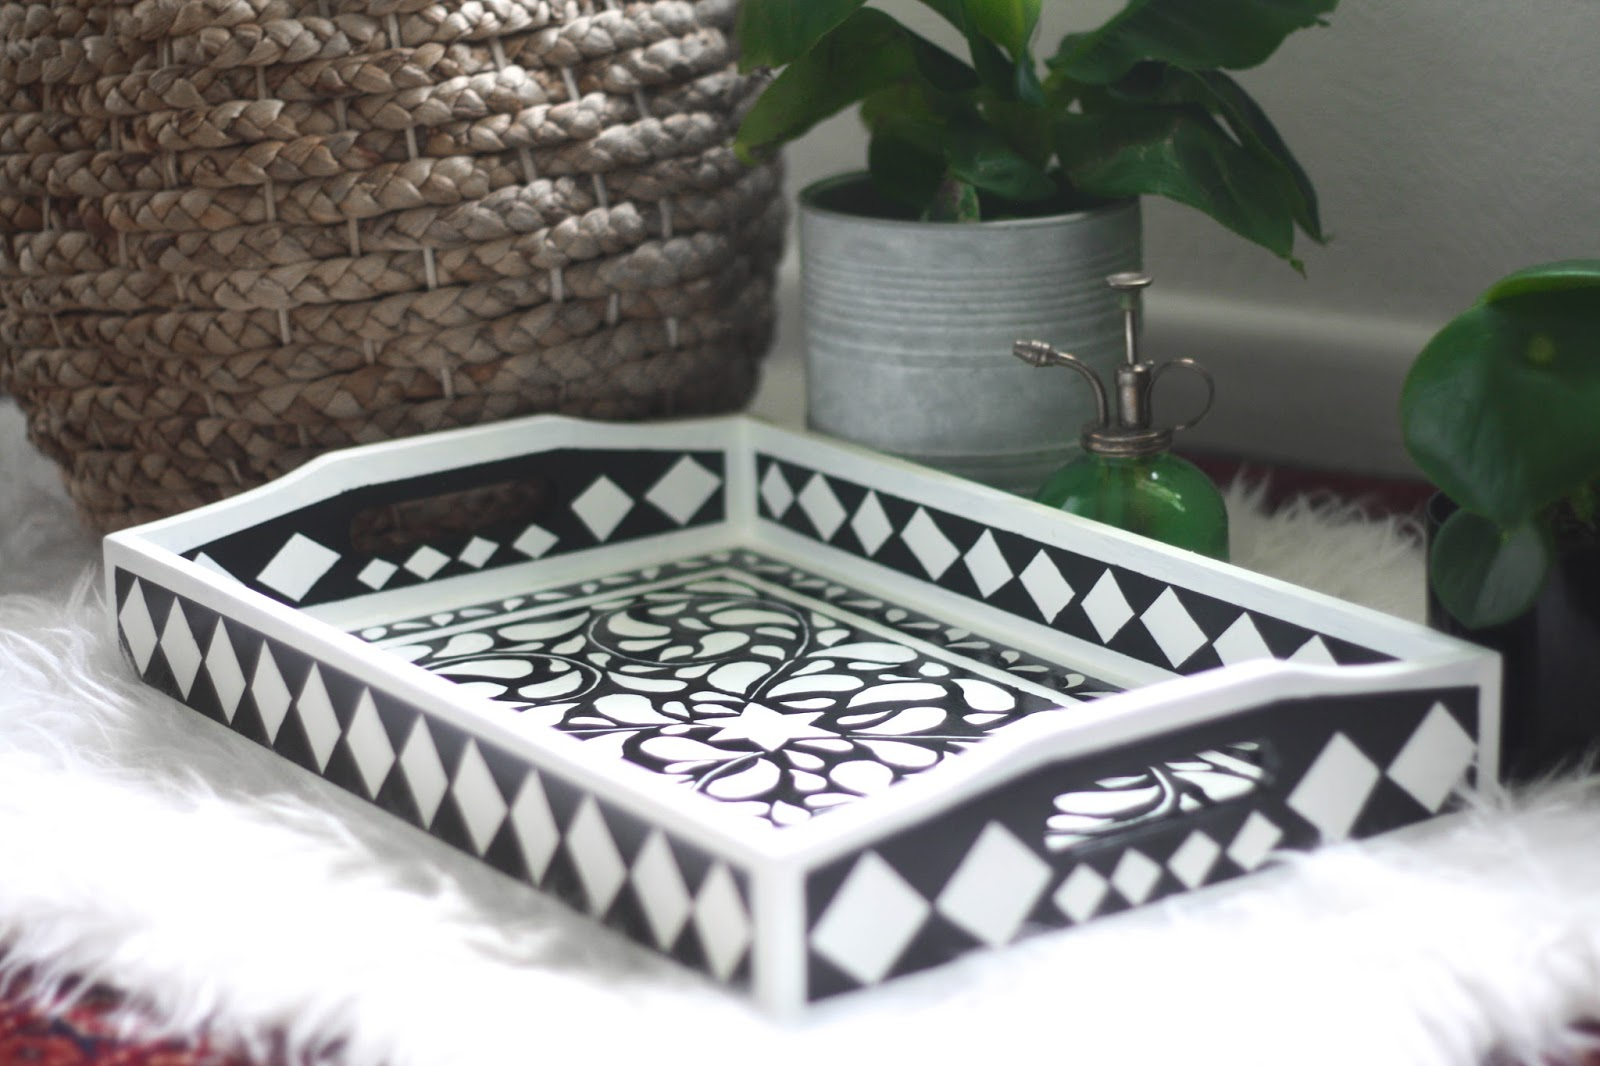 DIY beautiful faux bone inlay tray tutorial